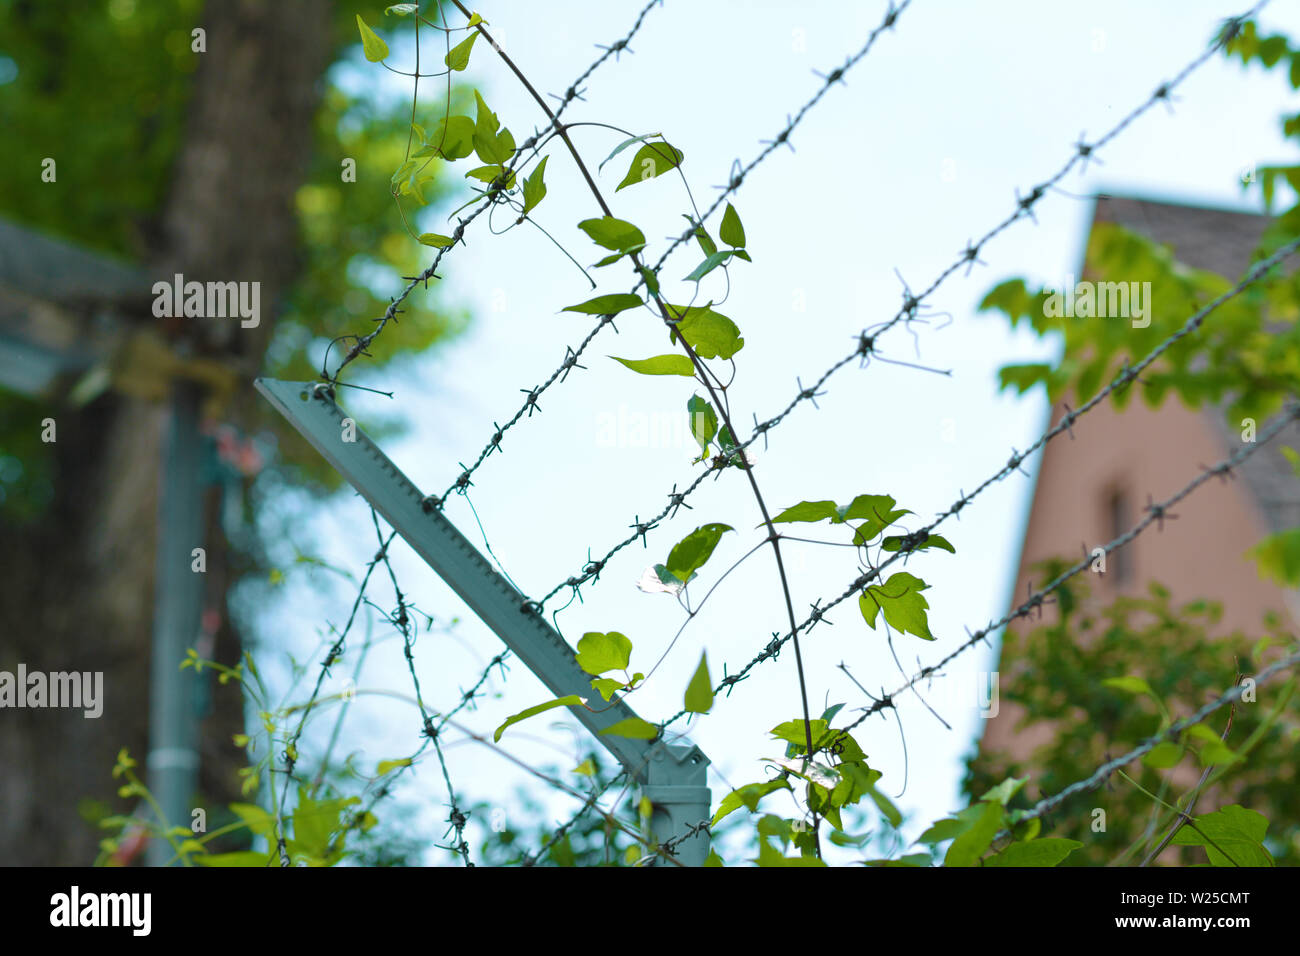 Overgrown barbed wire fence with blurry building in background - Stock Image